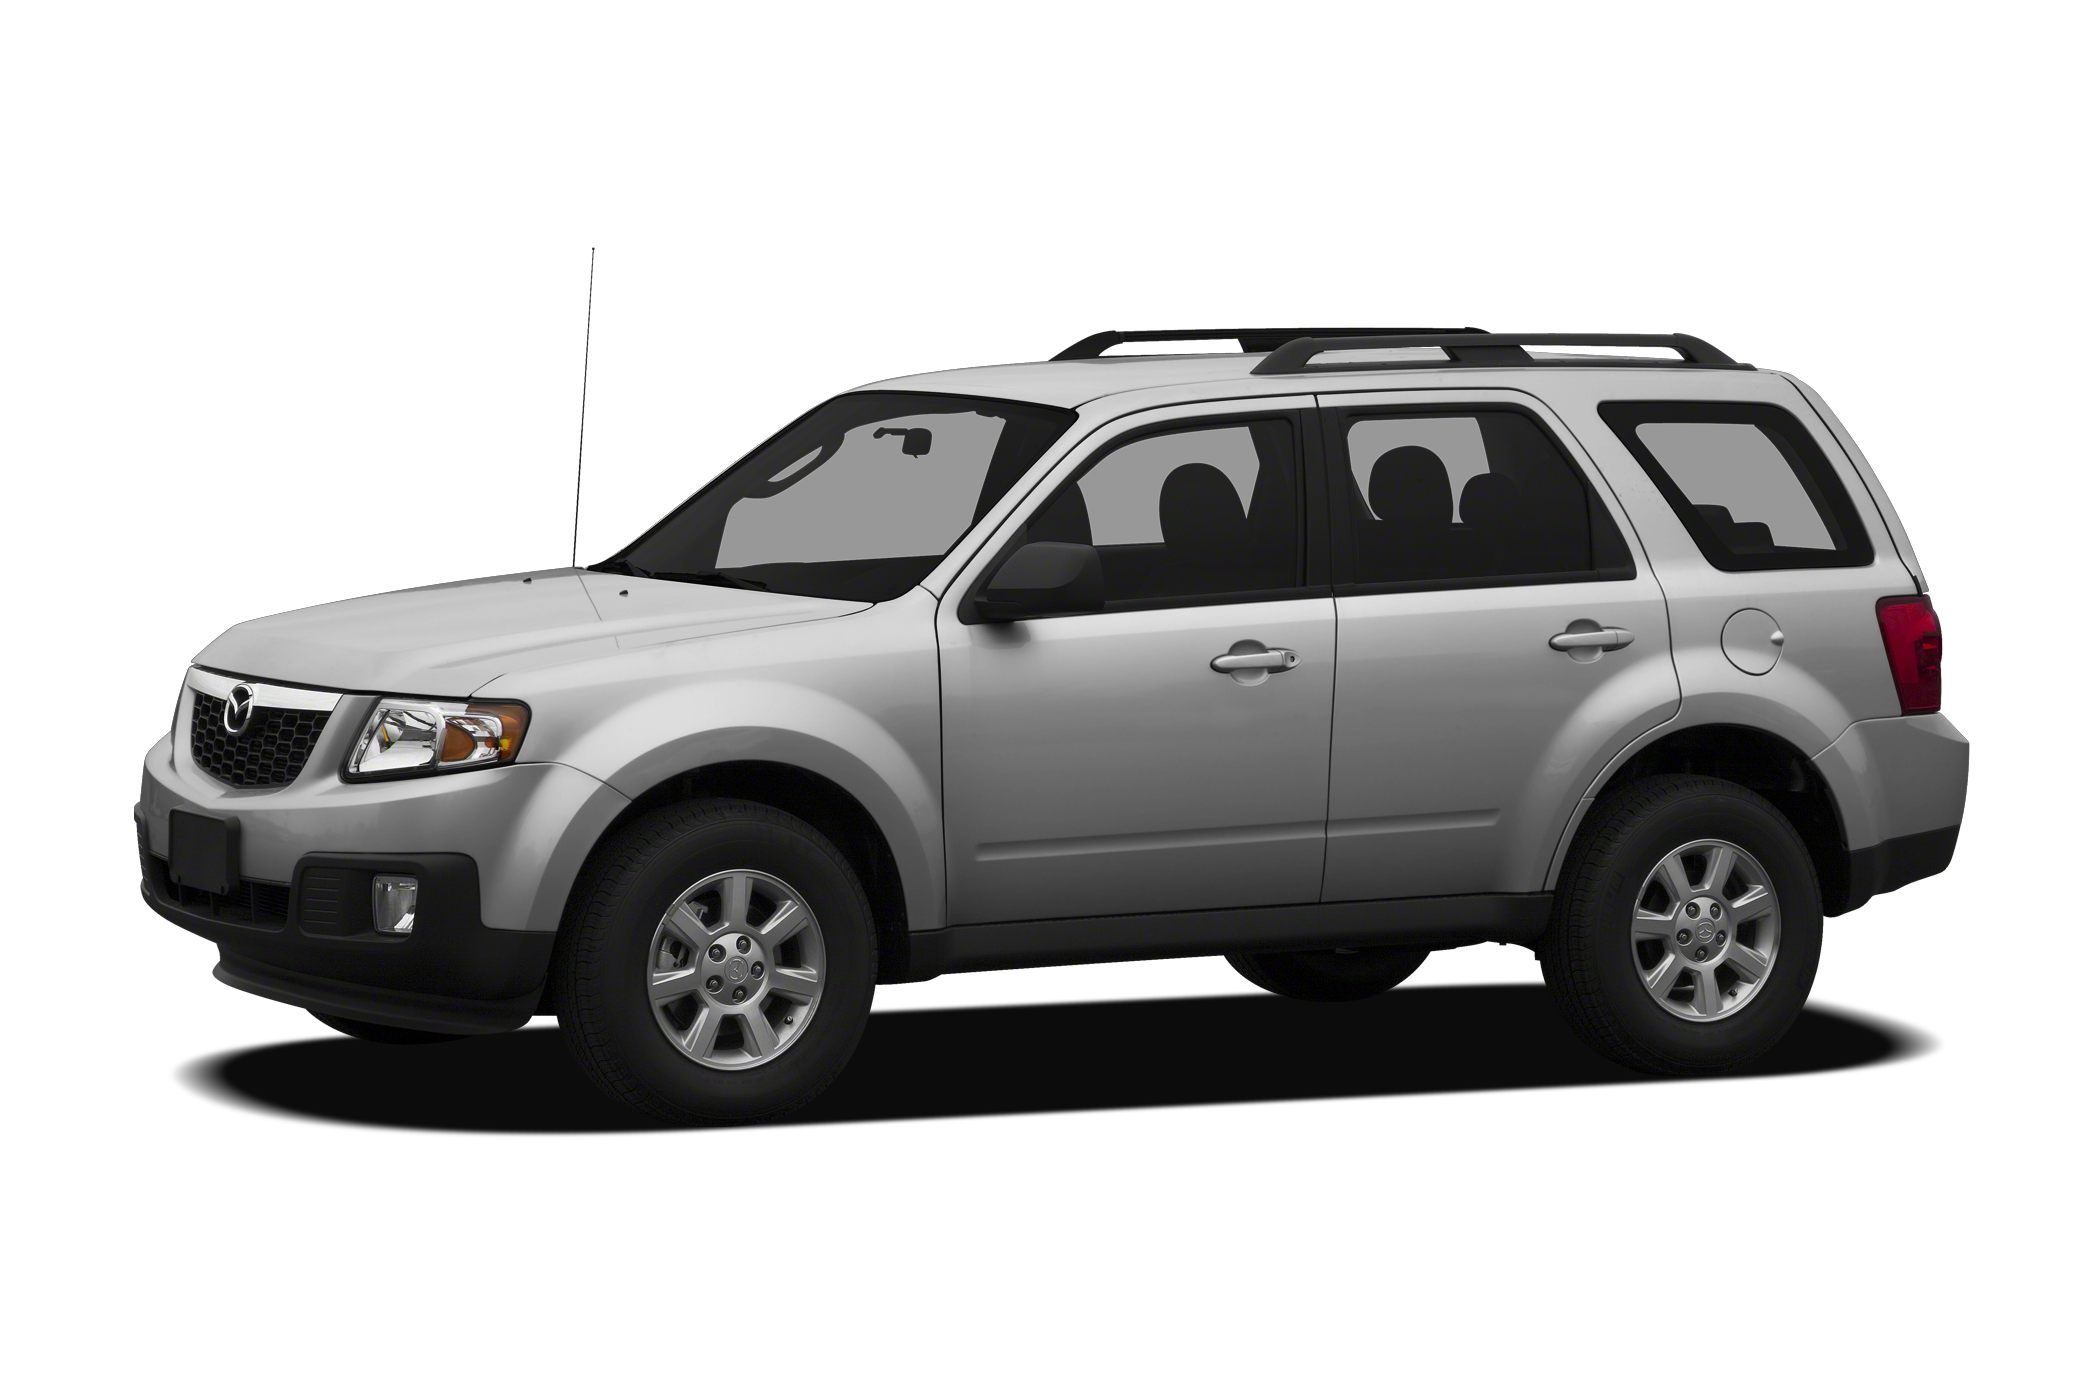 Mazda Tribute (Mazda Tribute): specifications and reviews of the owners